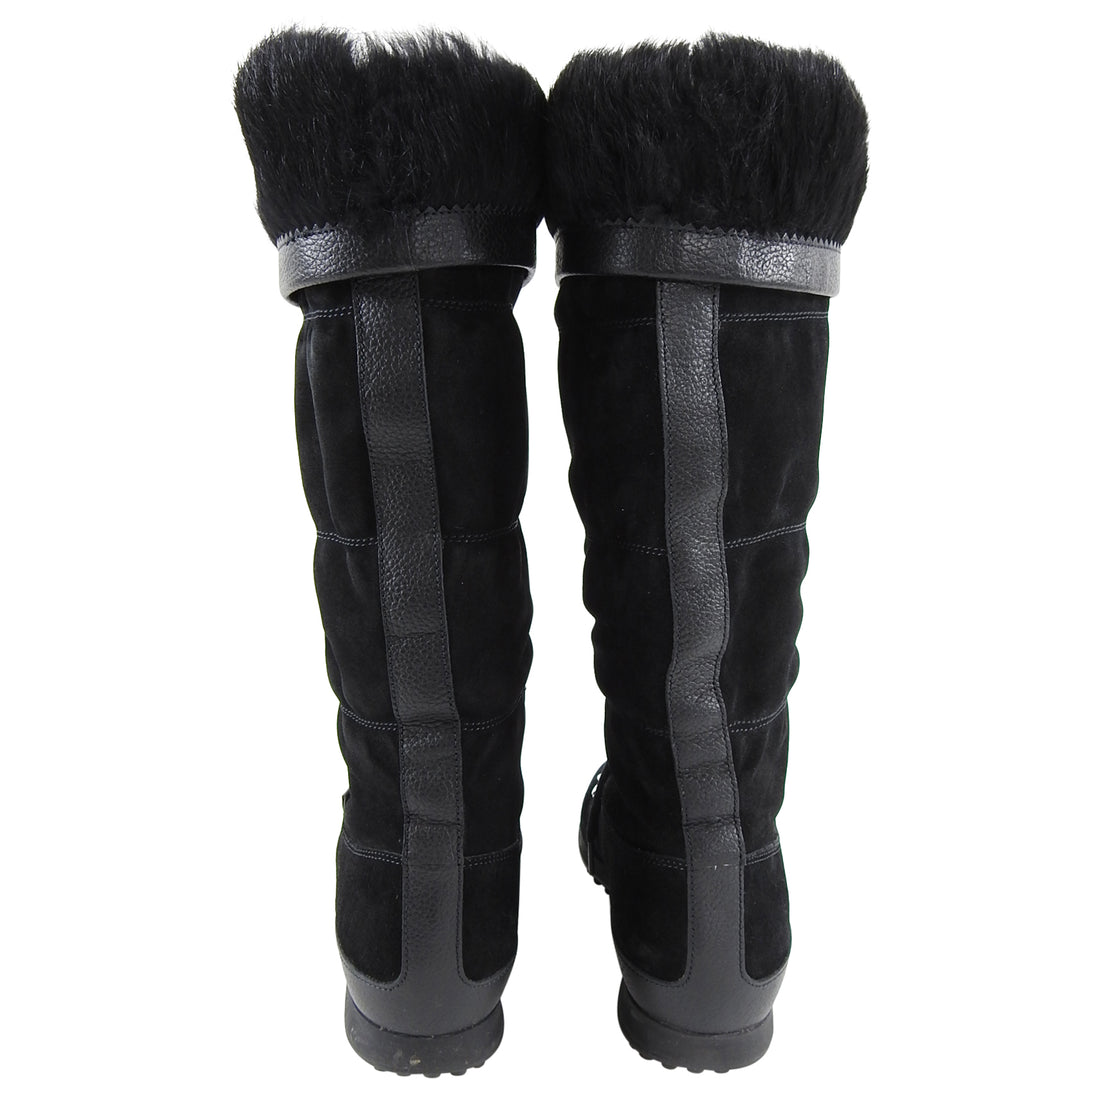 Gucci Black Suede Fur Lined Mountain Winter Boots - 6.5